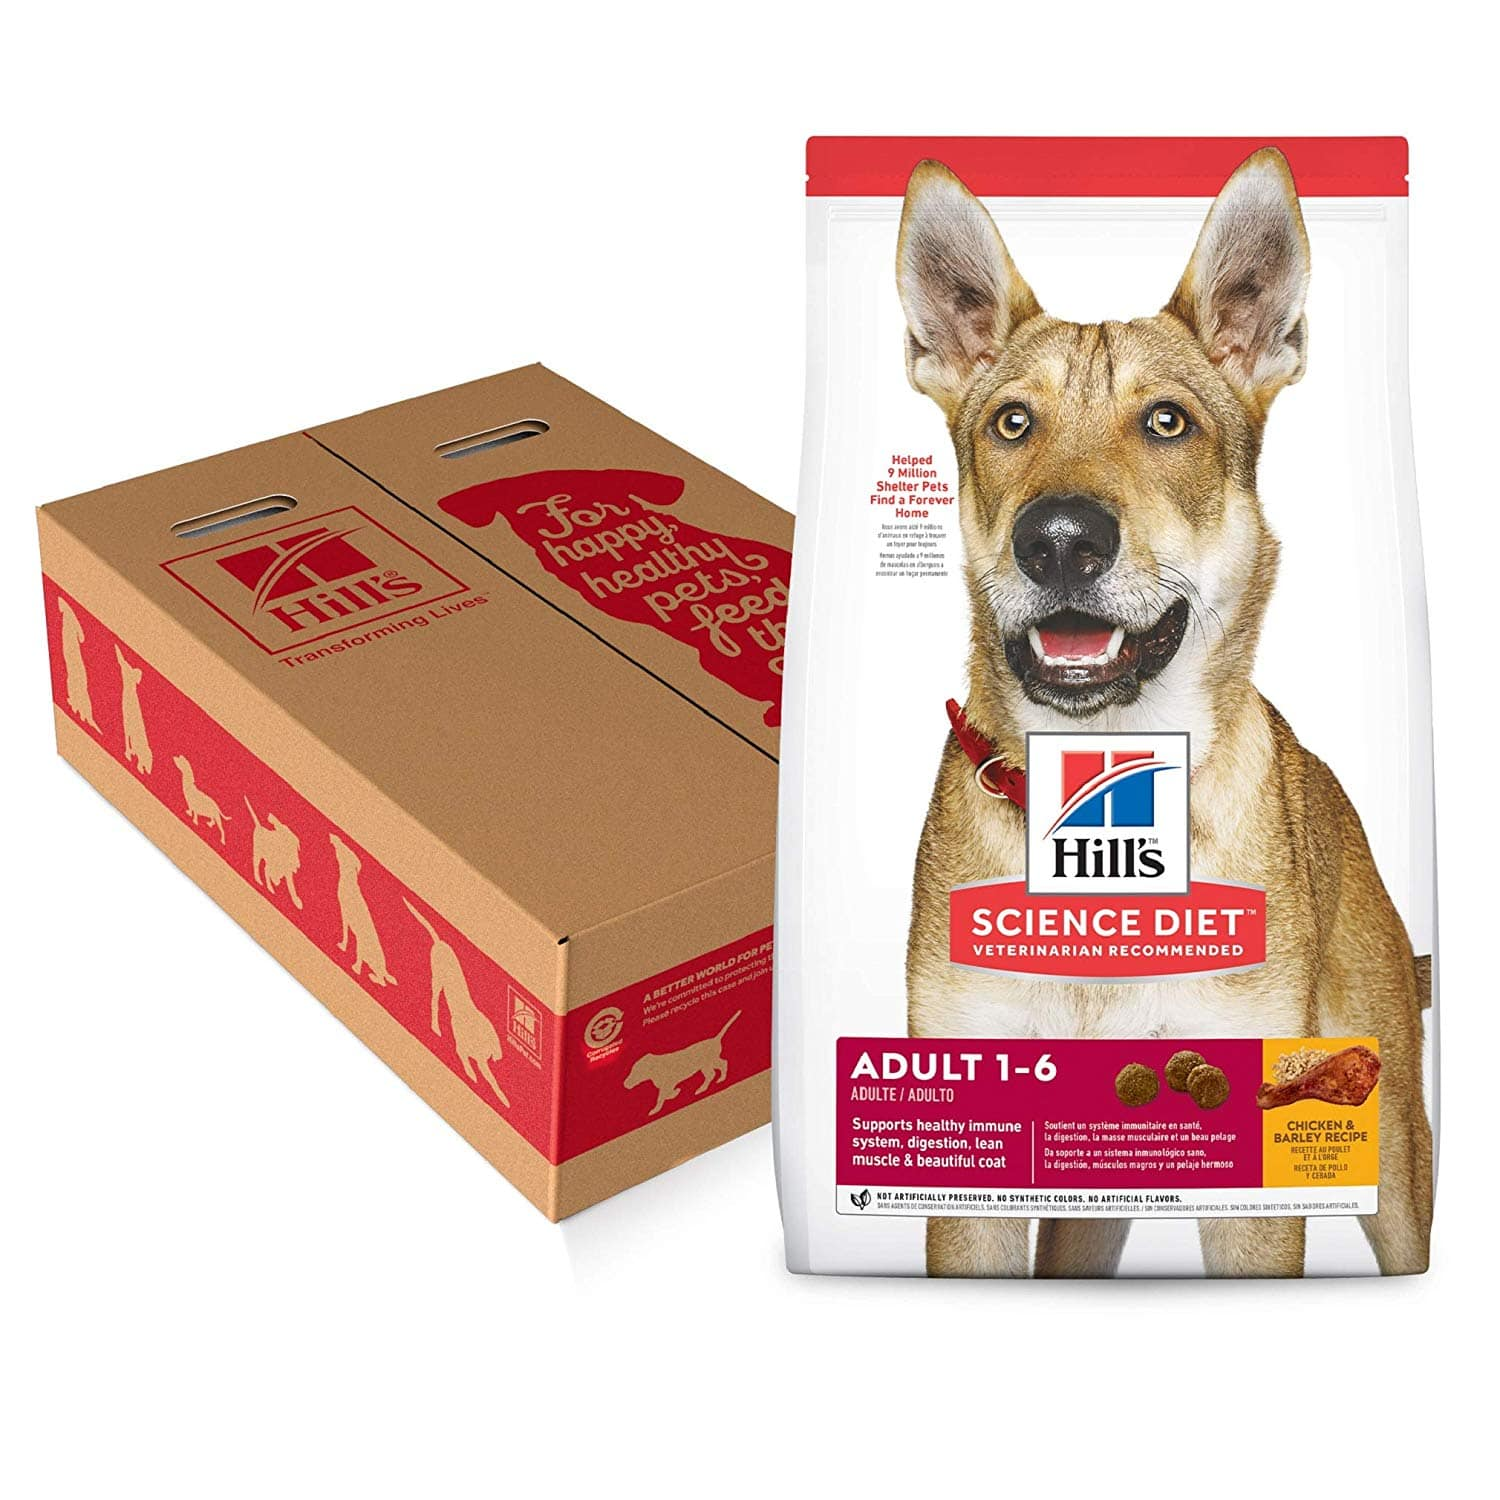 Hill's Science Diet Dry Dog Food, Adult, Chicken & Barley Recipe - 35lb bag for $33.02